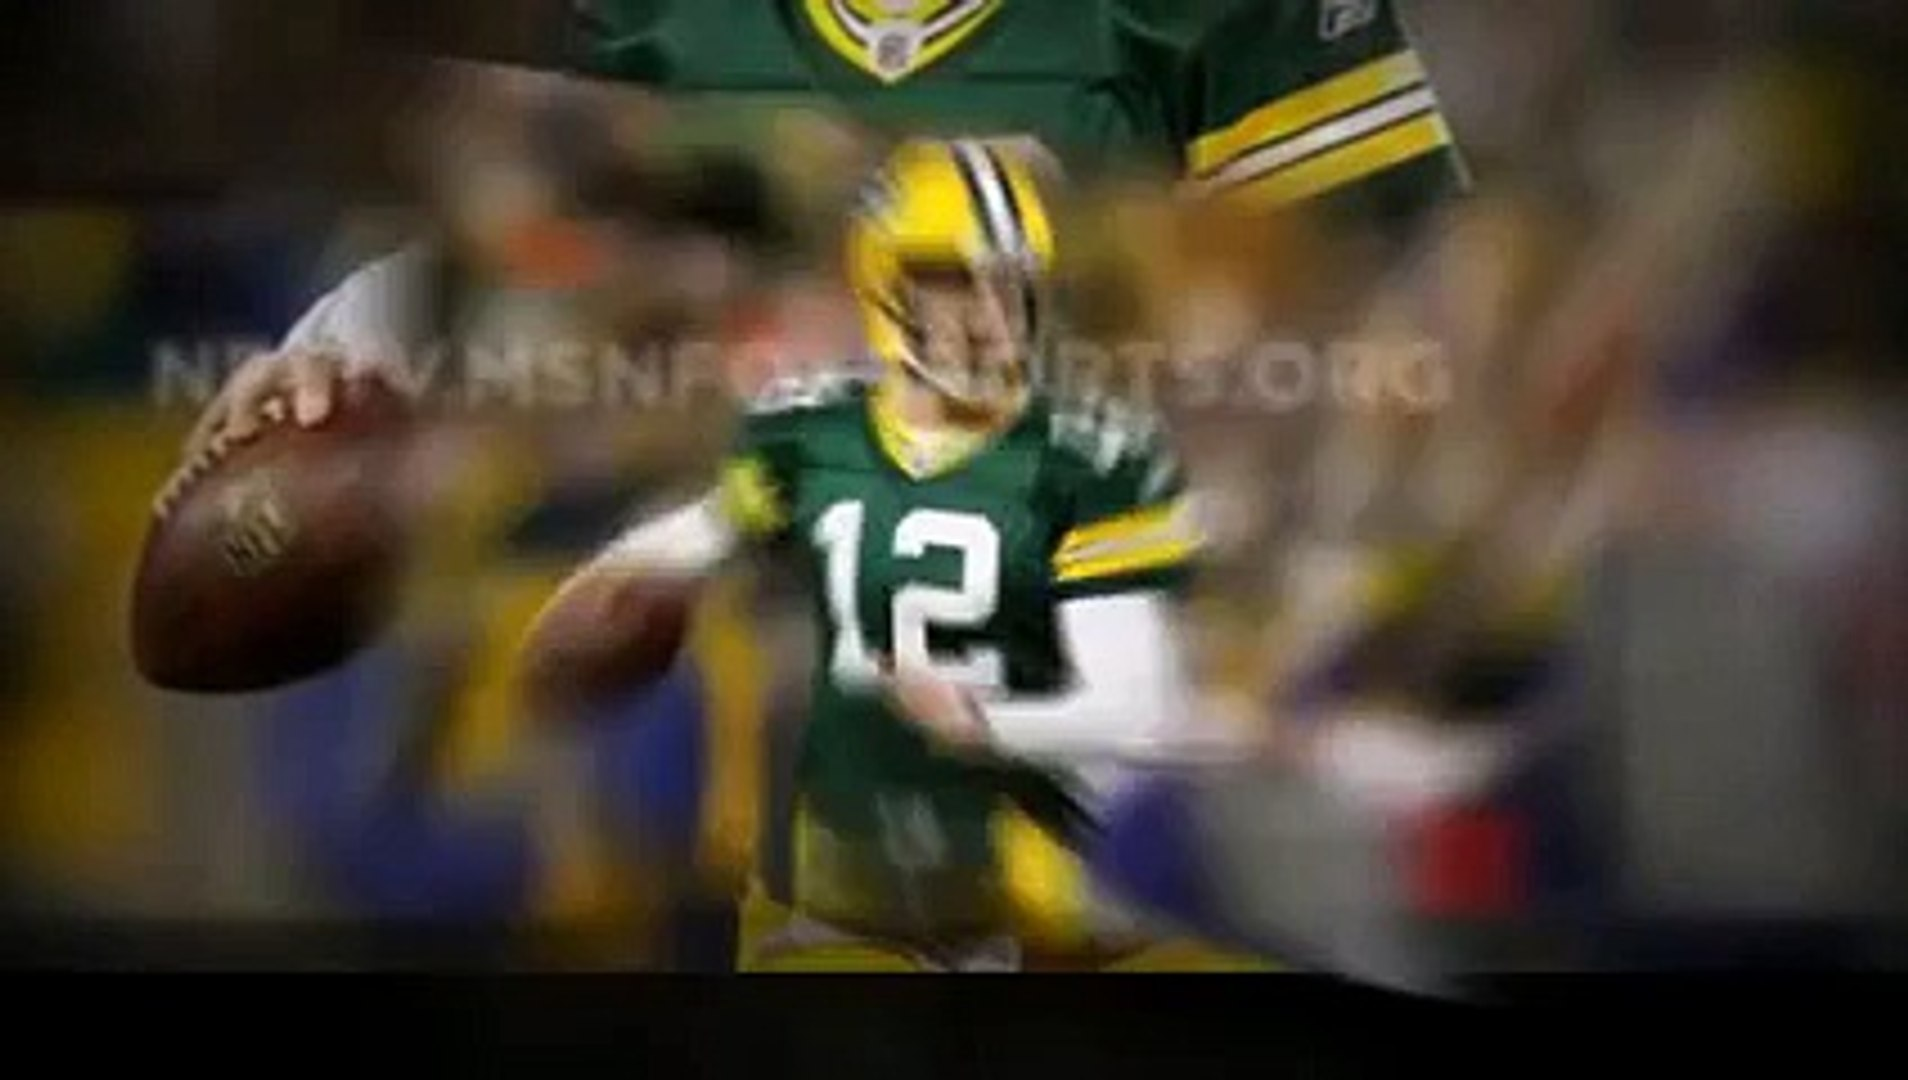 Watch bears and packers game sunday night football week 1 games live streaming